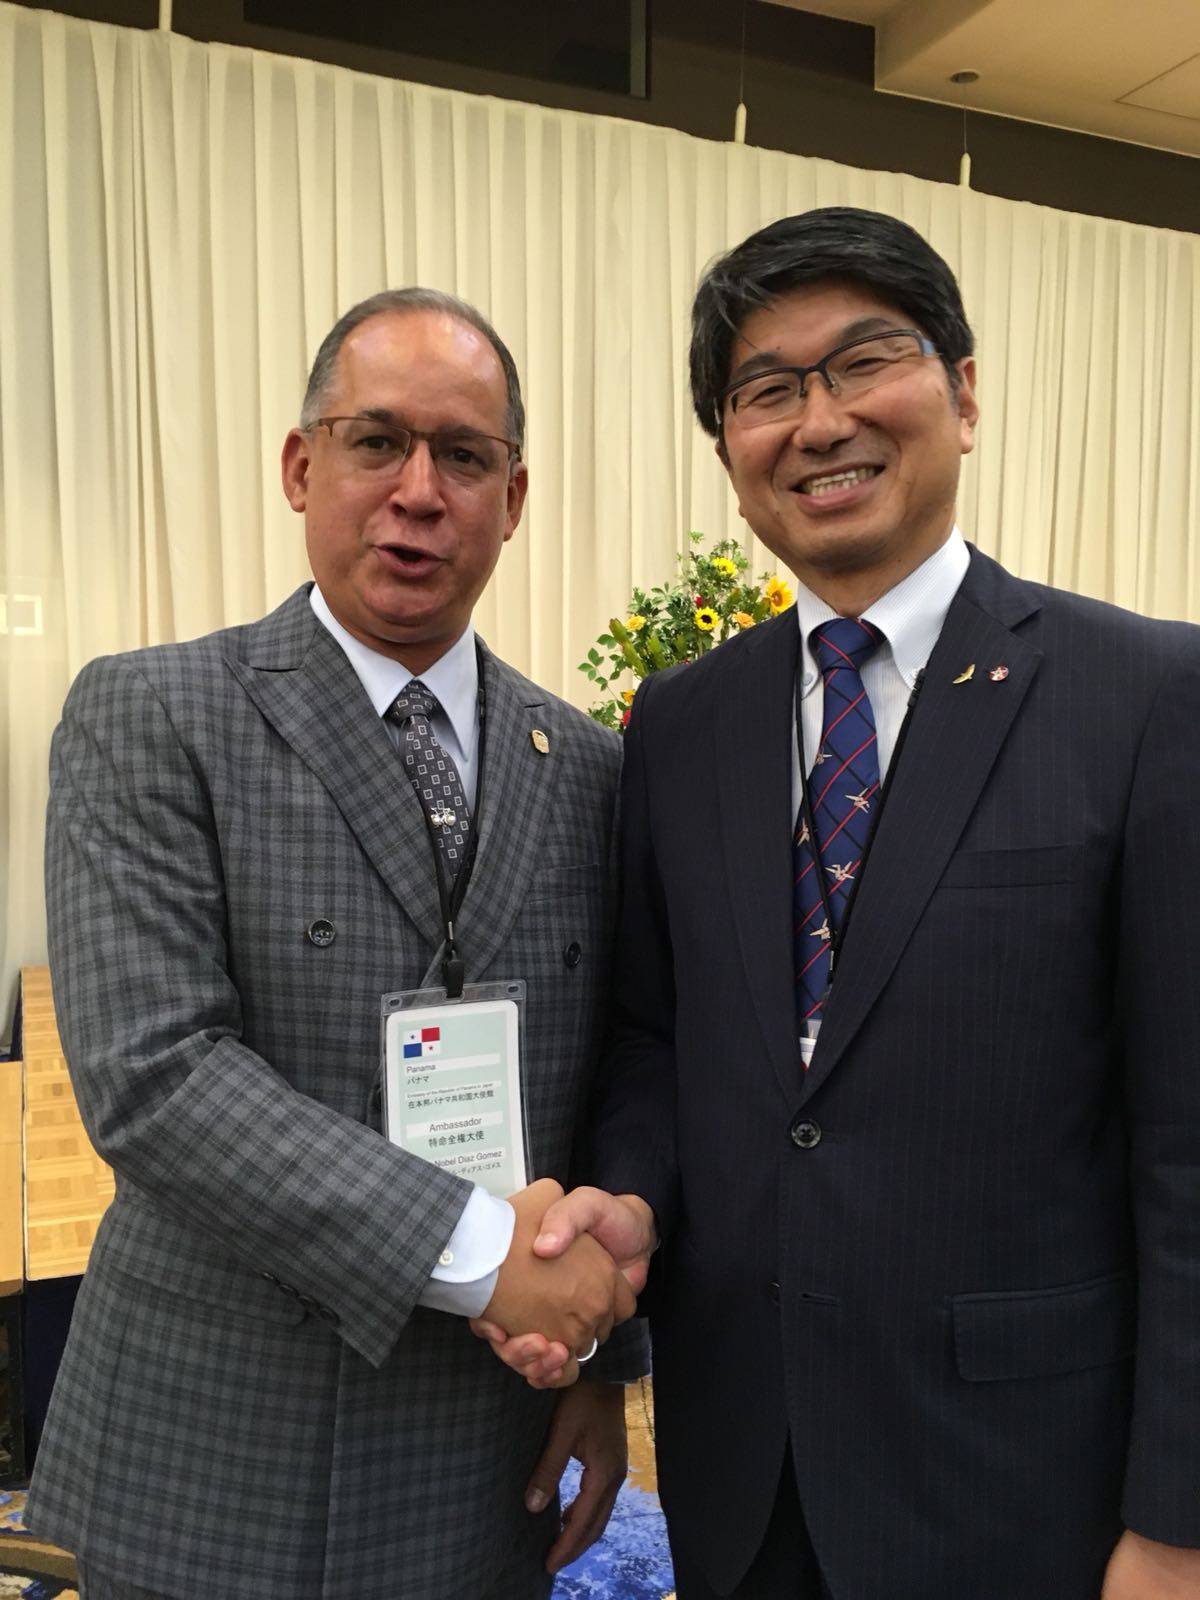 Ambassador Diaz with Mr. Tomihisa Taue, Mayor of Nagasaki city at the welcome reception held by Nagasaki city.